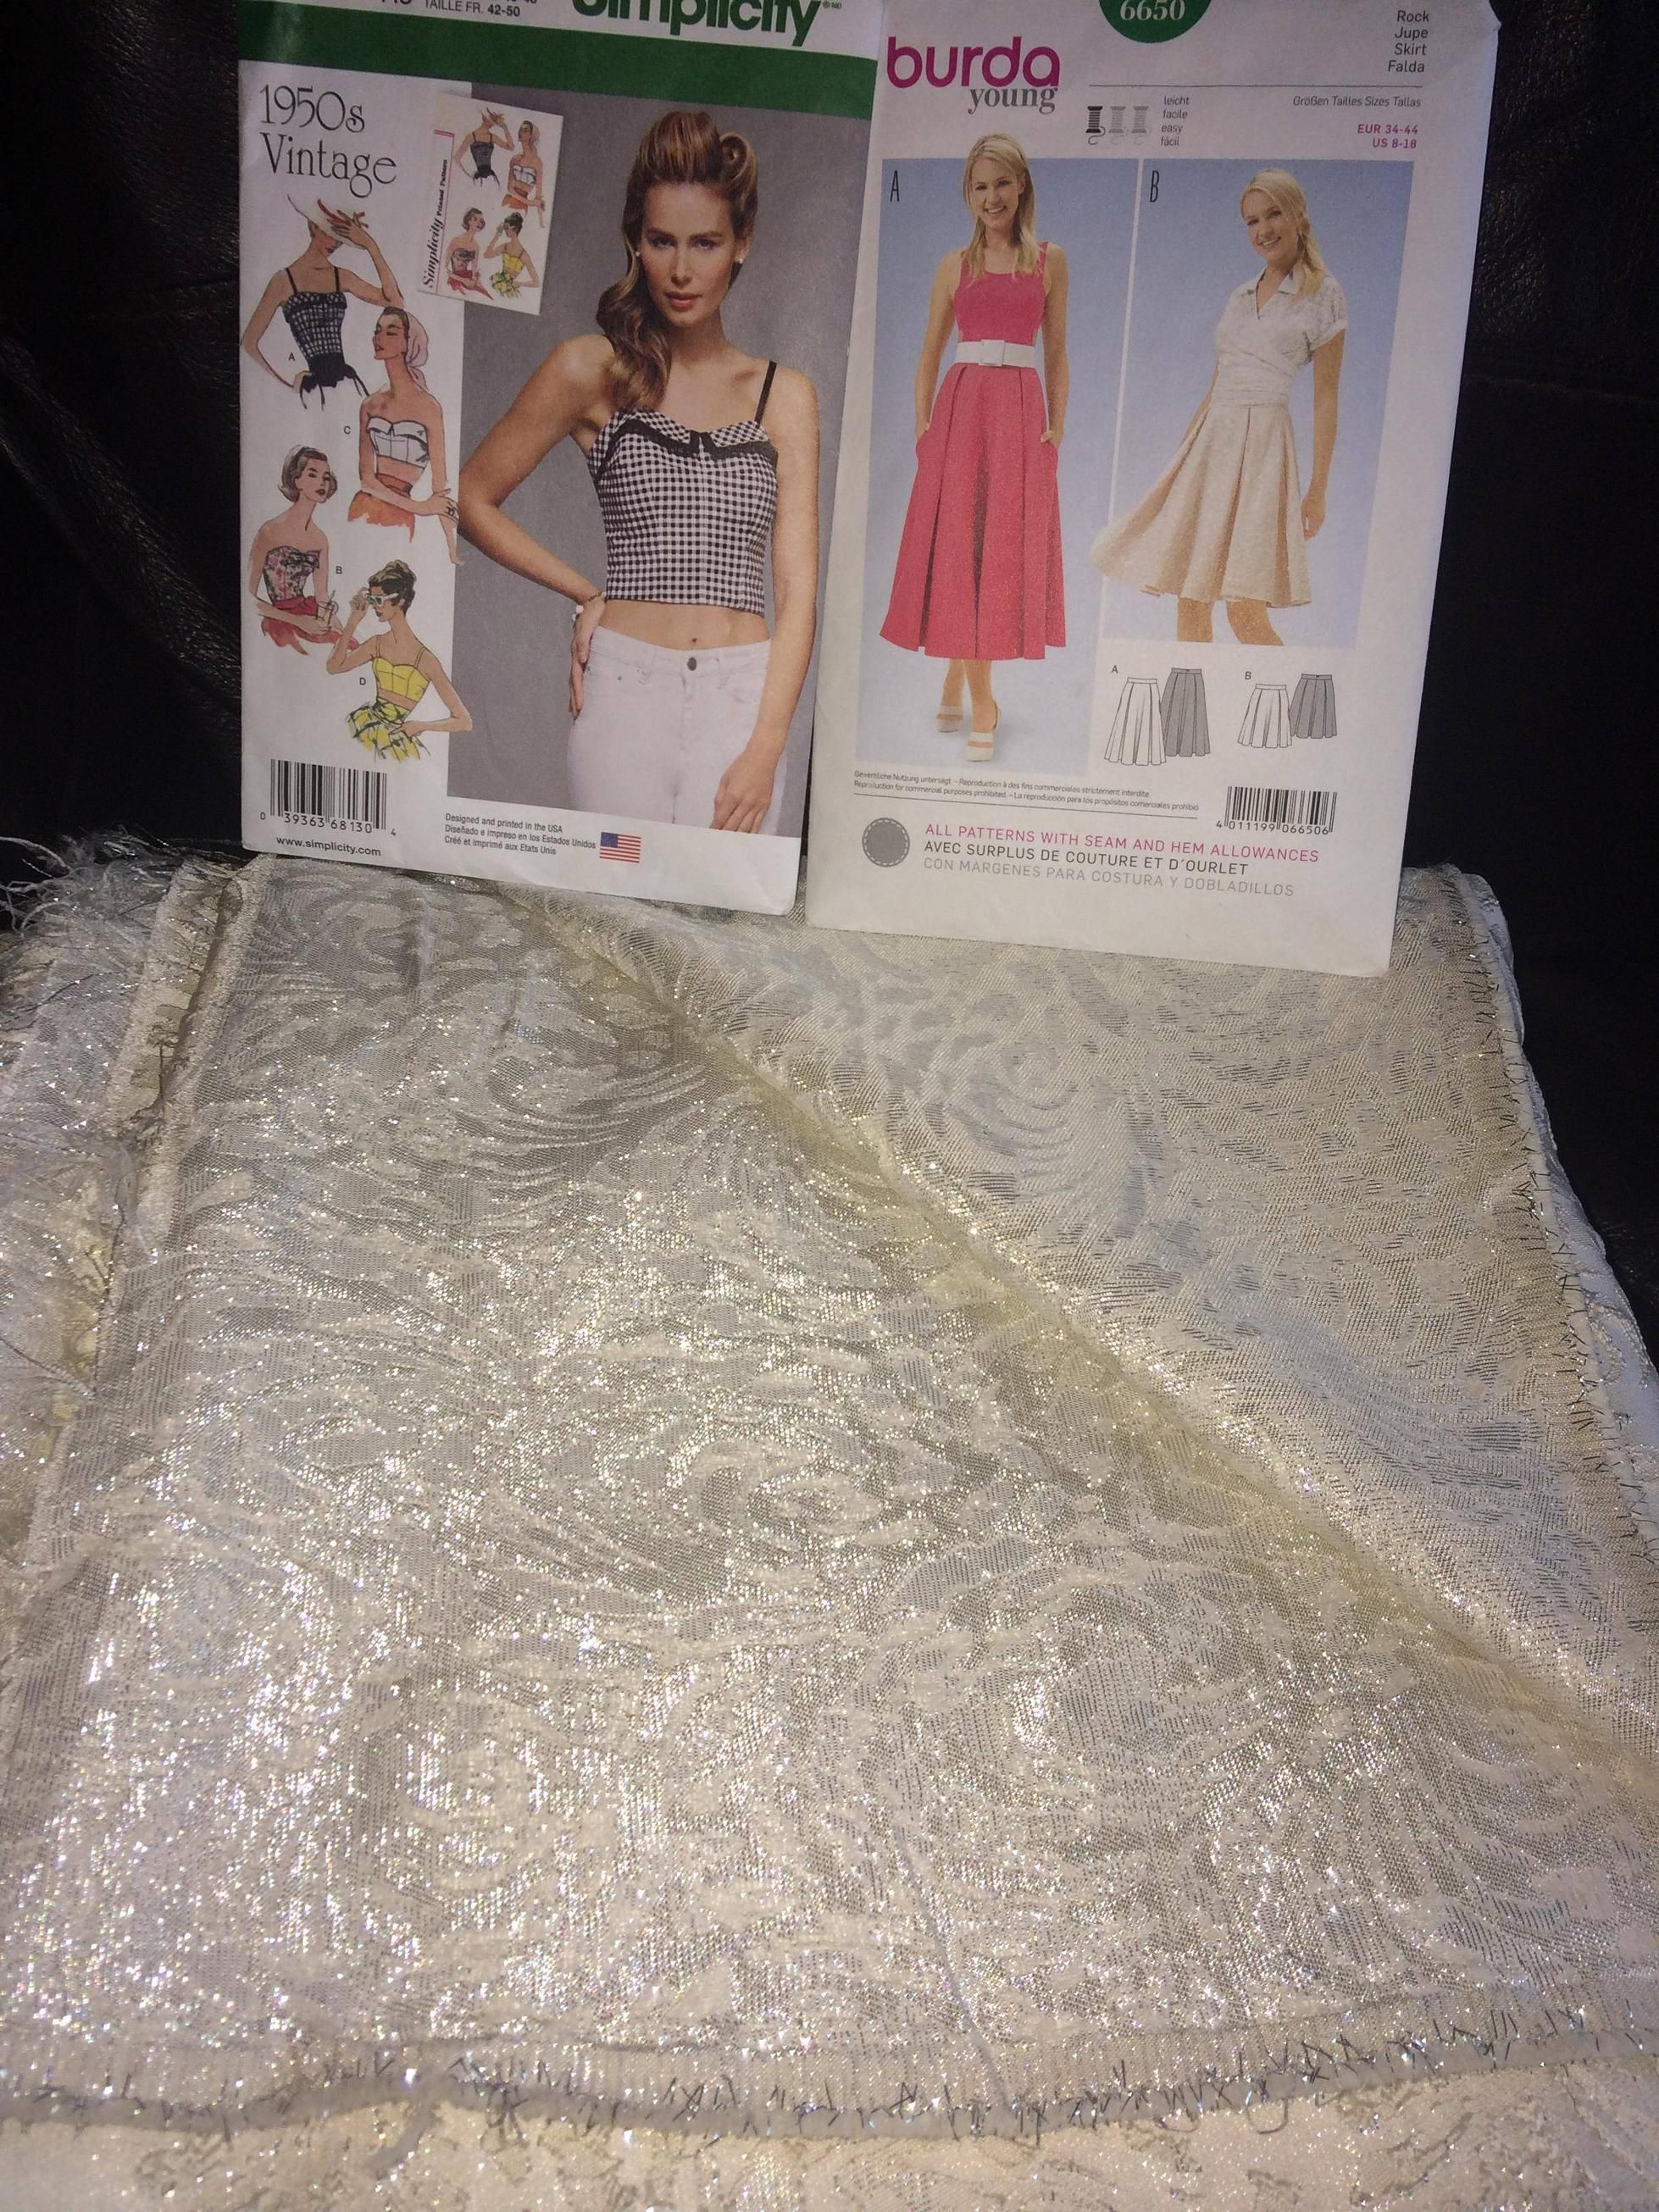 Simplicity 8130 Burda 6650 My Wedding Dress Fabric And The Two Patterns I